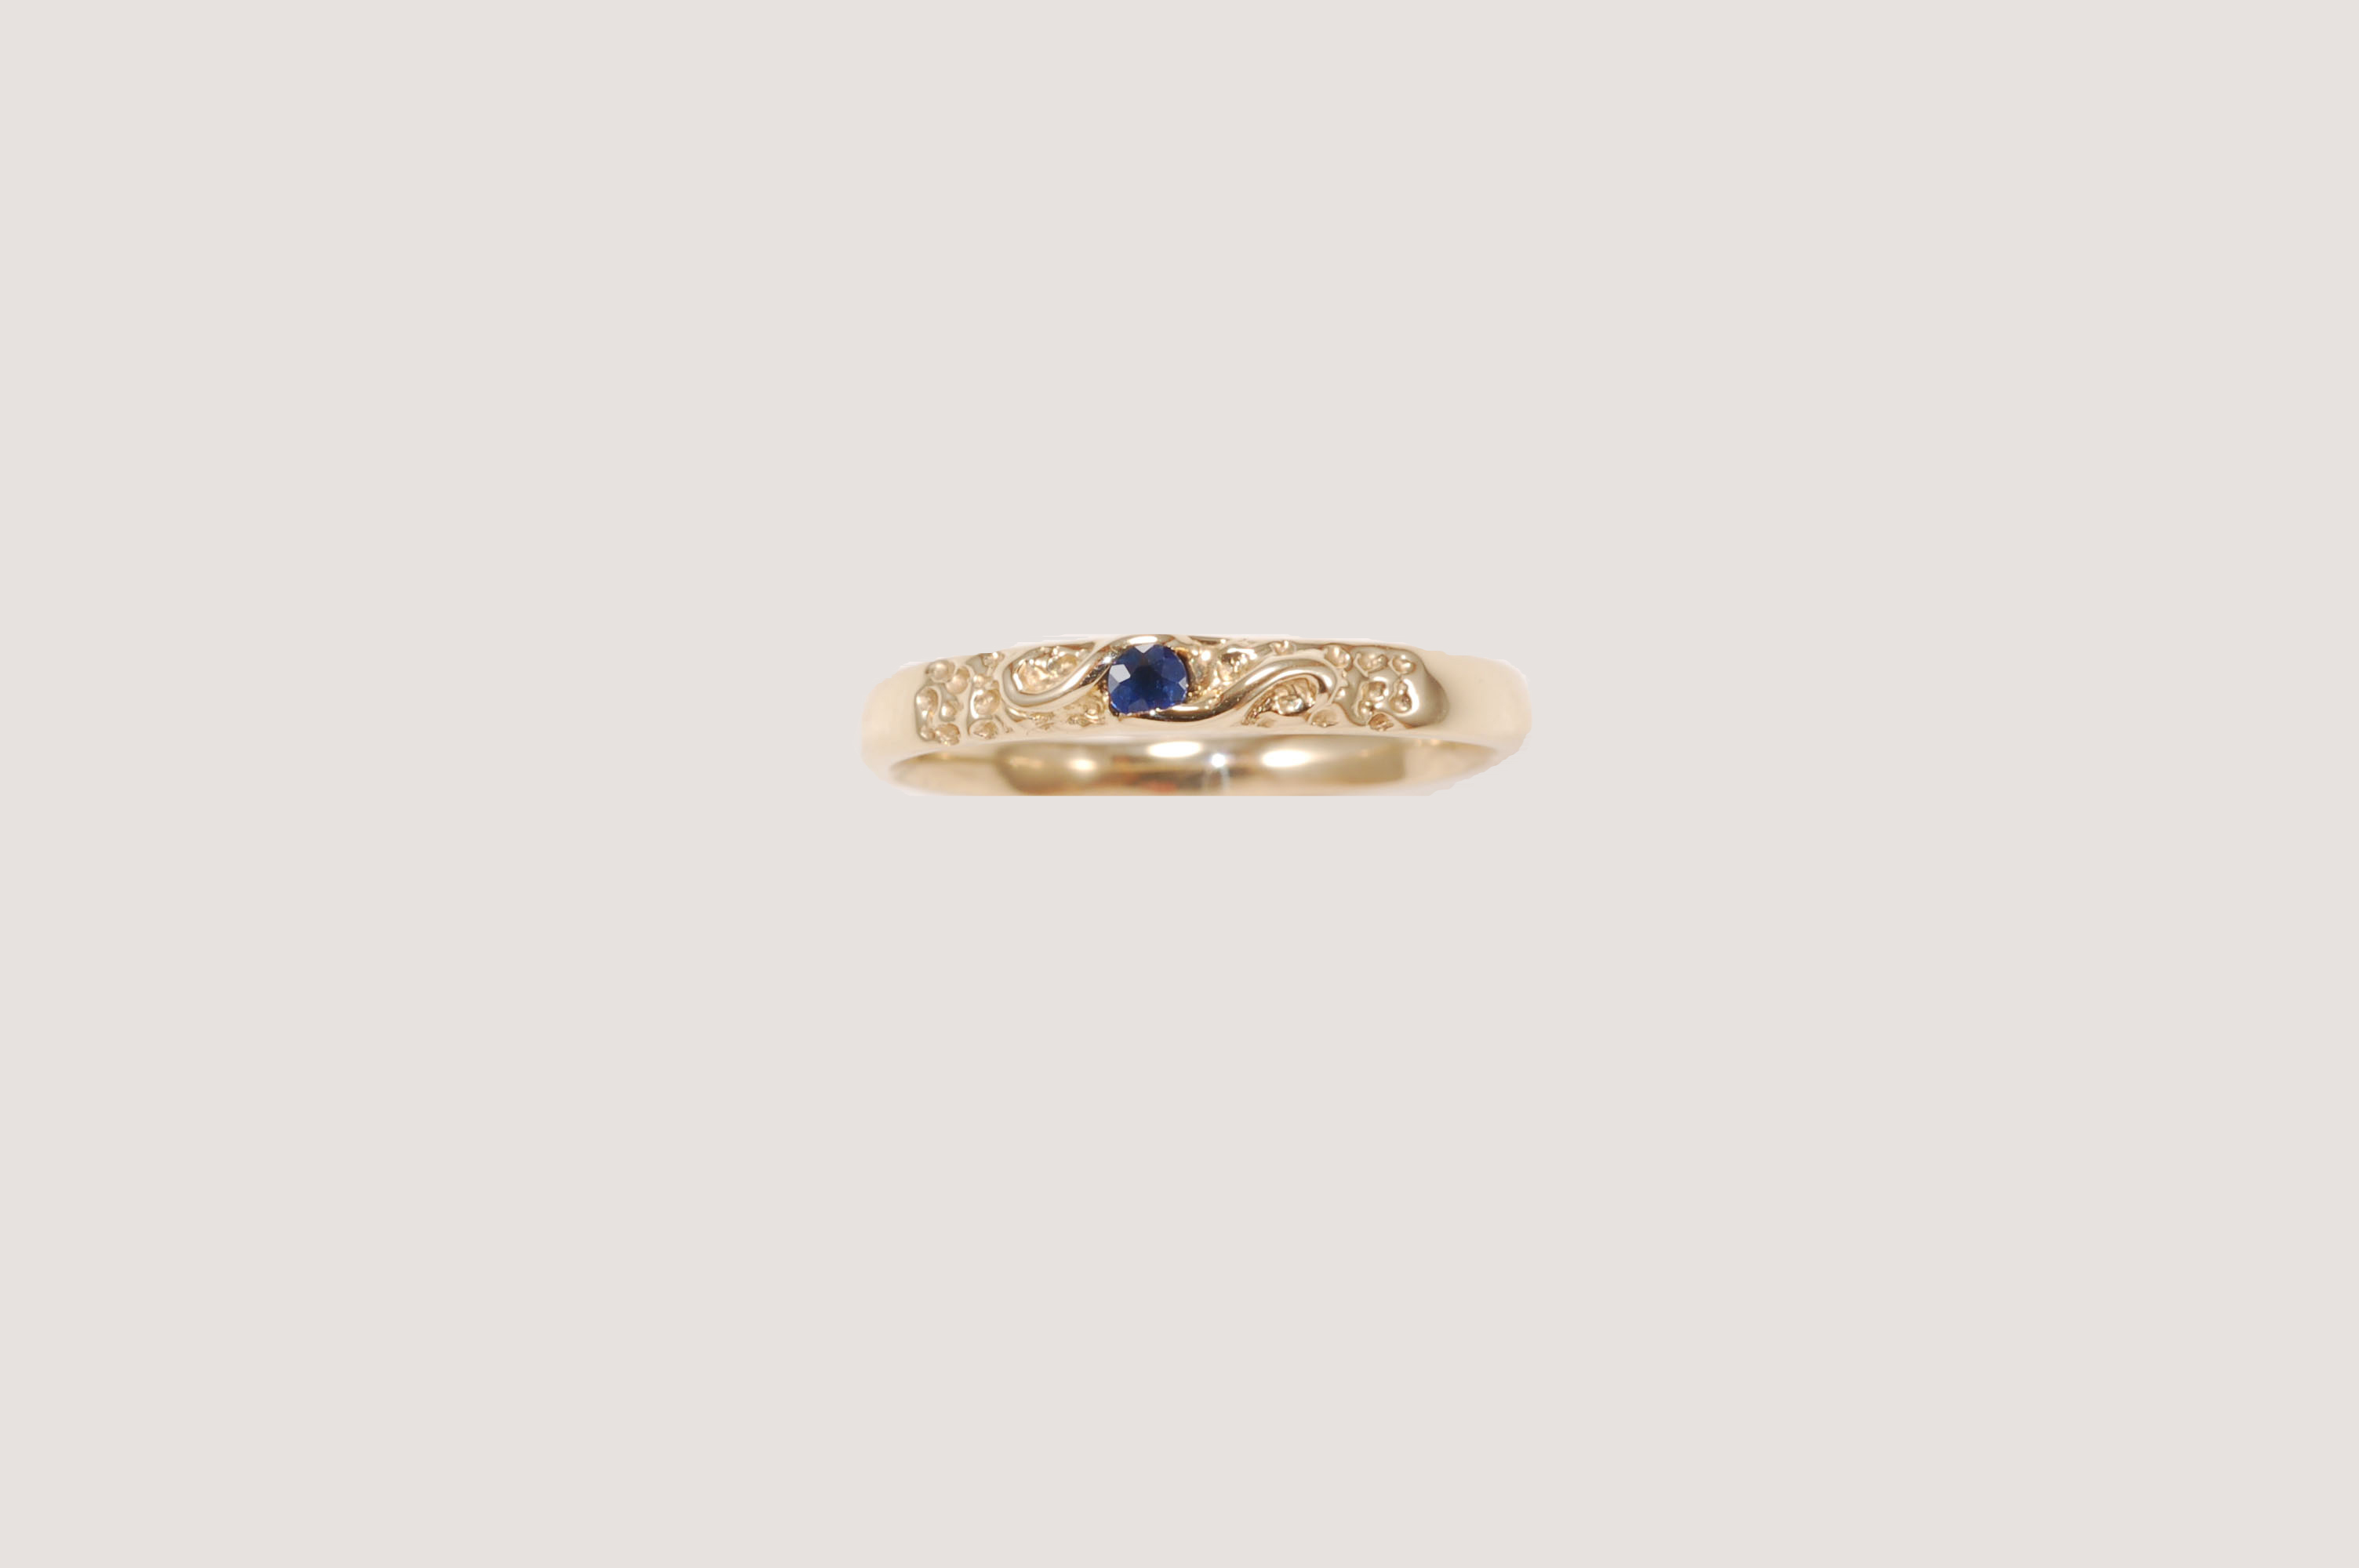 prouctdetail pukhraj single buy sapphire golden yellow carat oval pieces